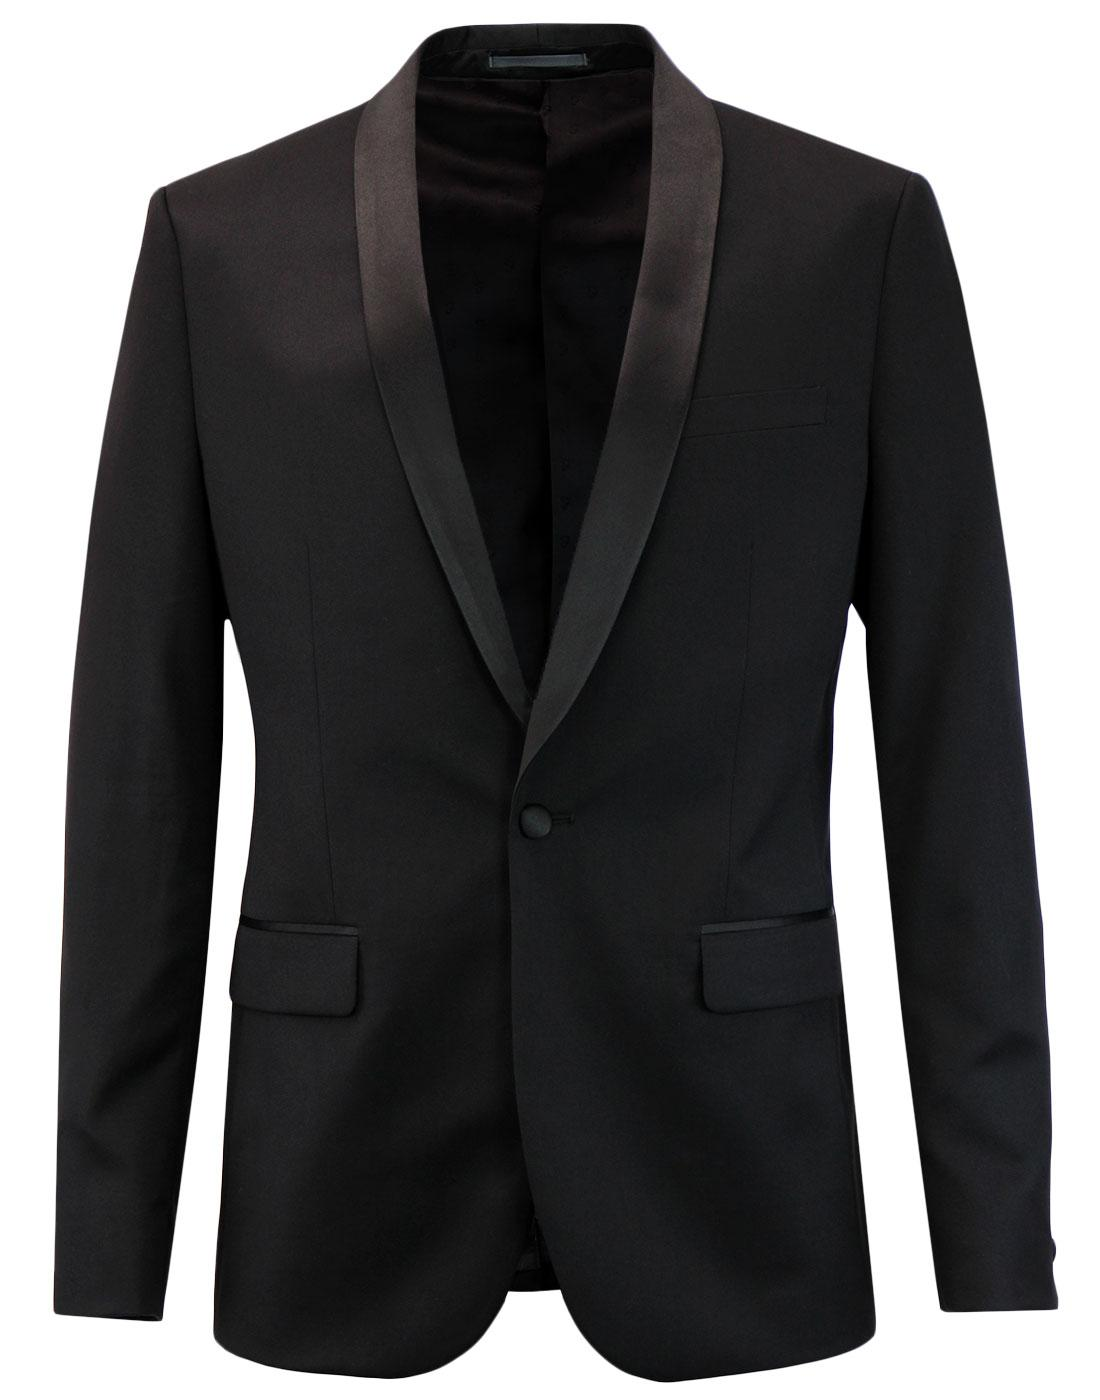 FARAH Retro 1960s Shawl Collar Dinner Suit Jacket